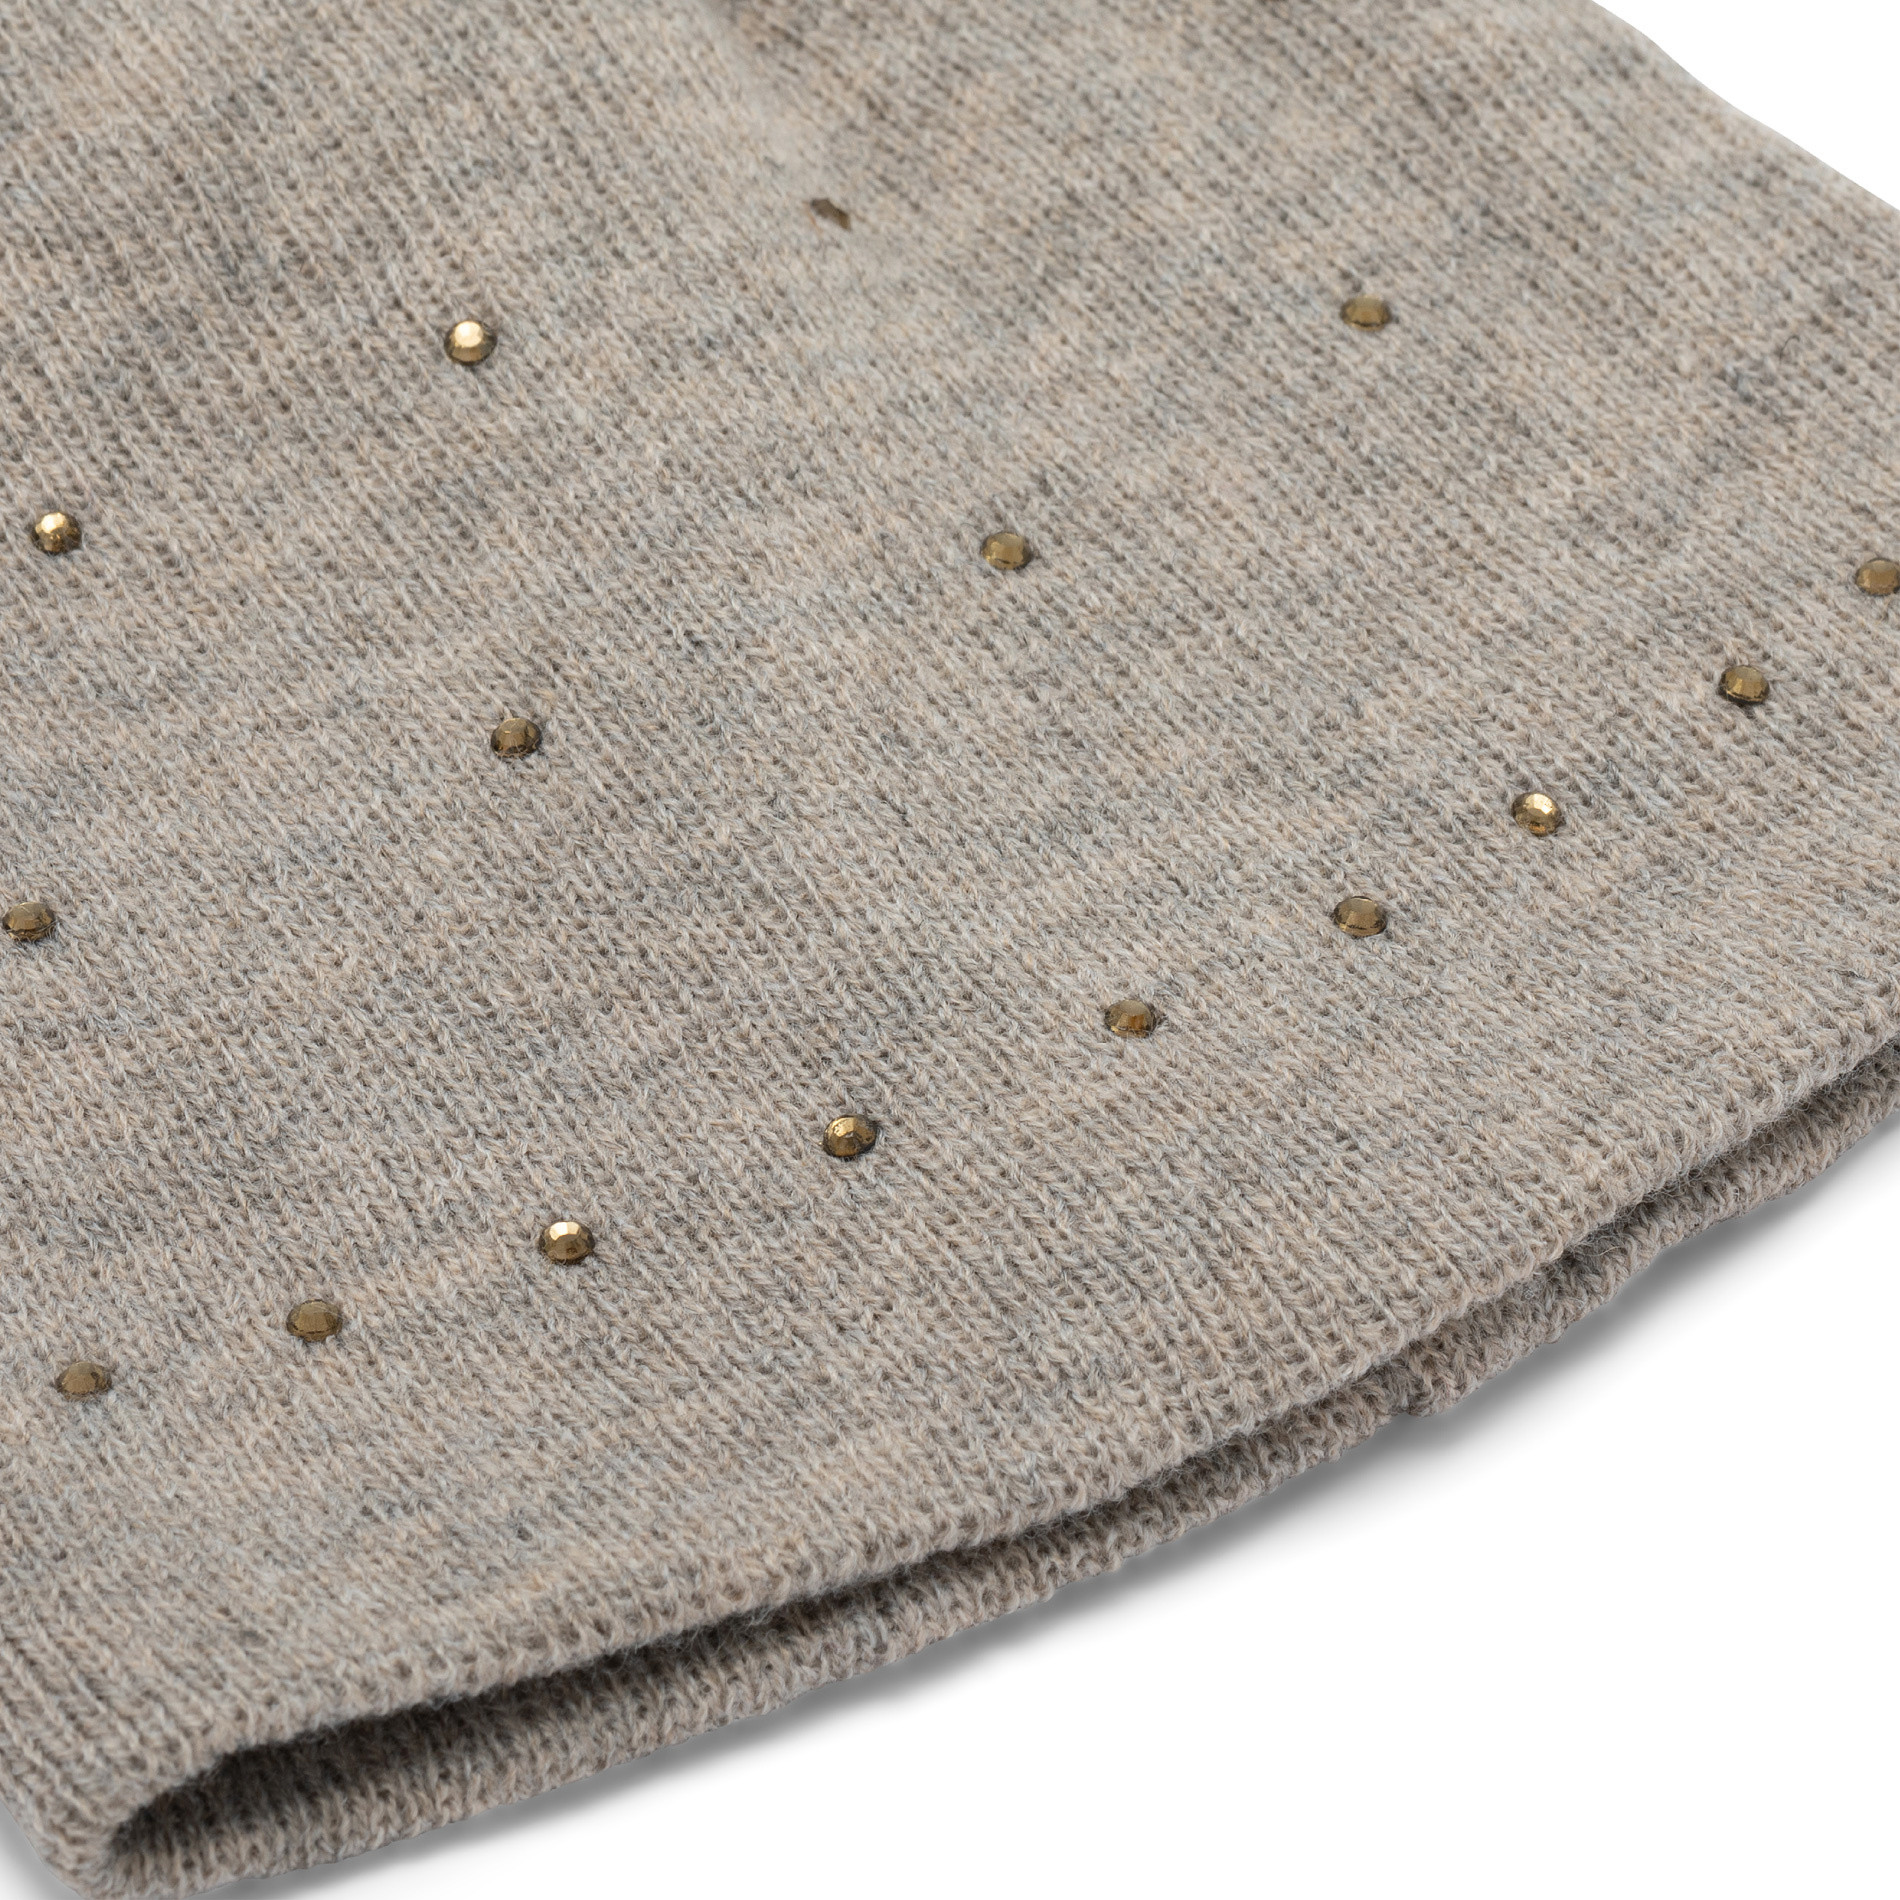 Berretto con strass Koan, Beige, large image number 1